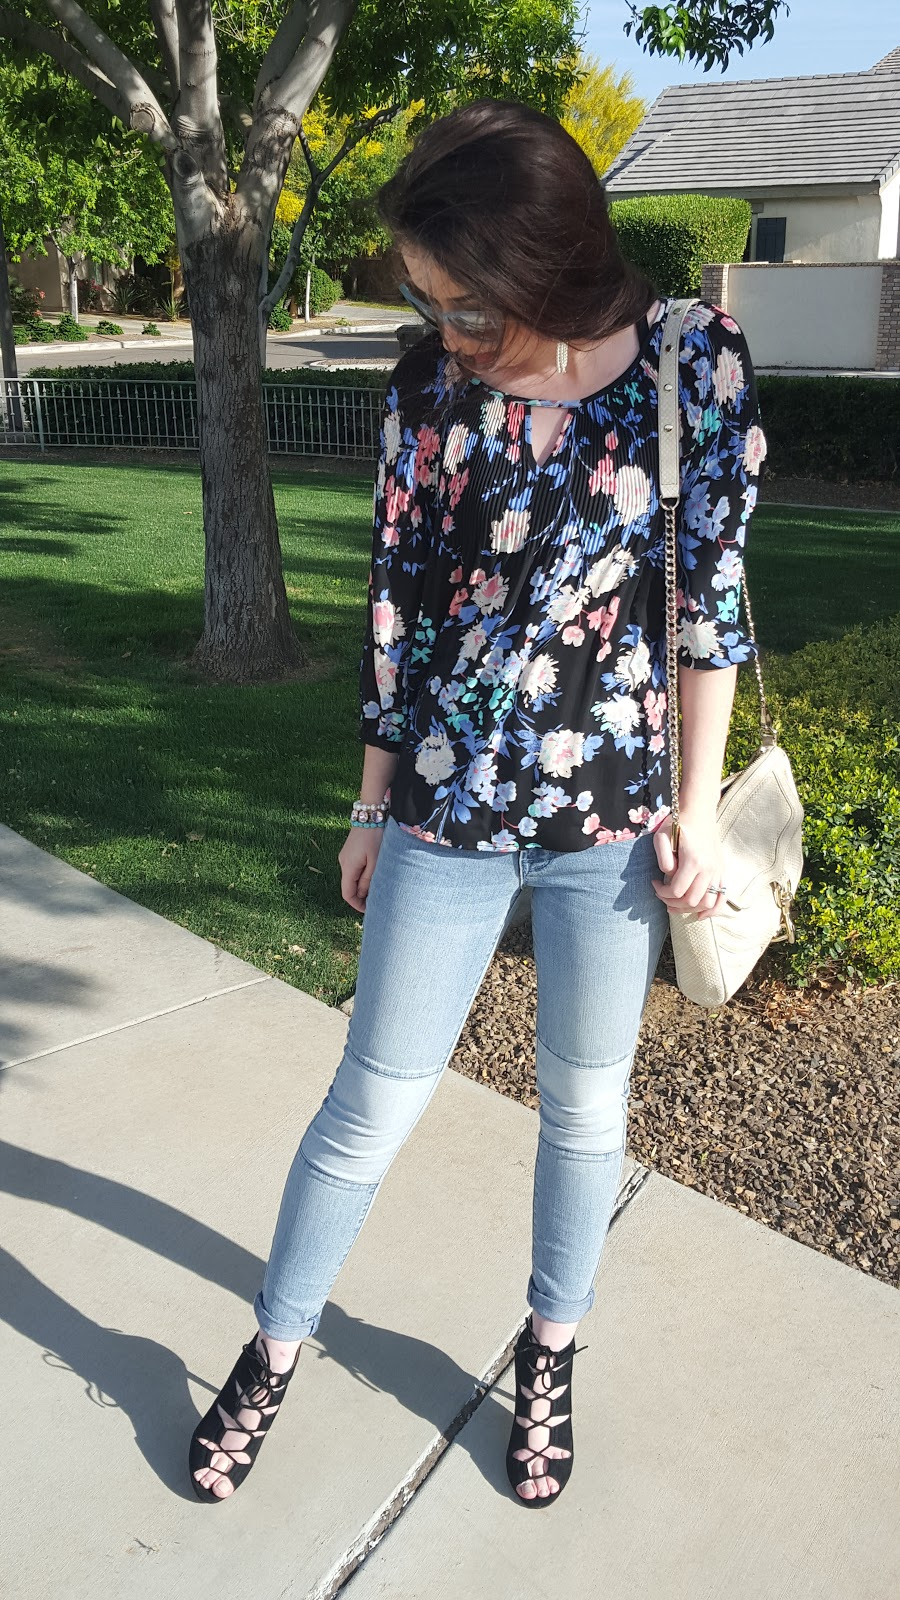 Spring outfit- florals and lace up shoes